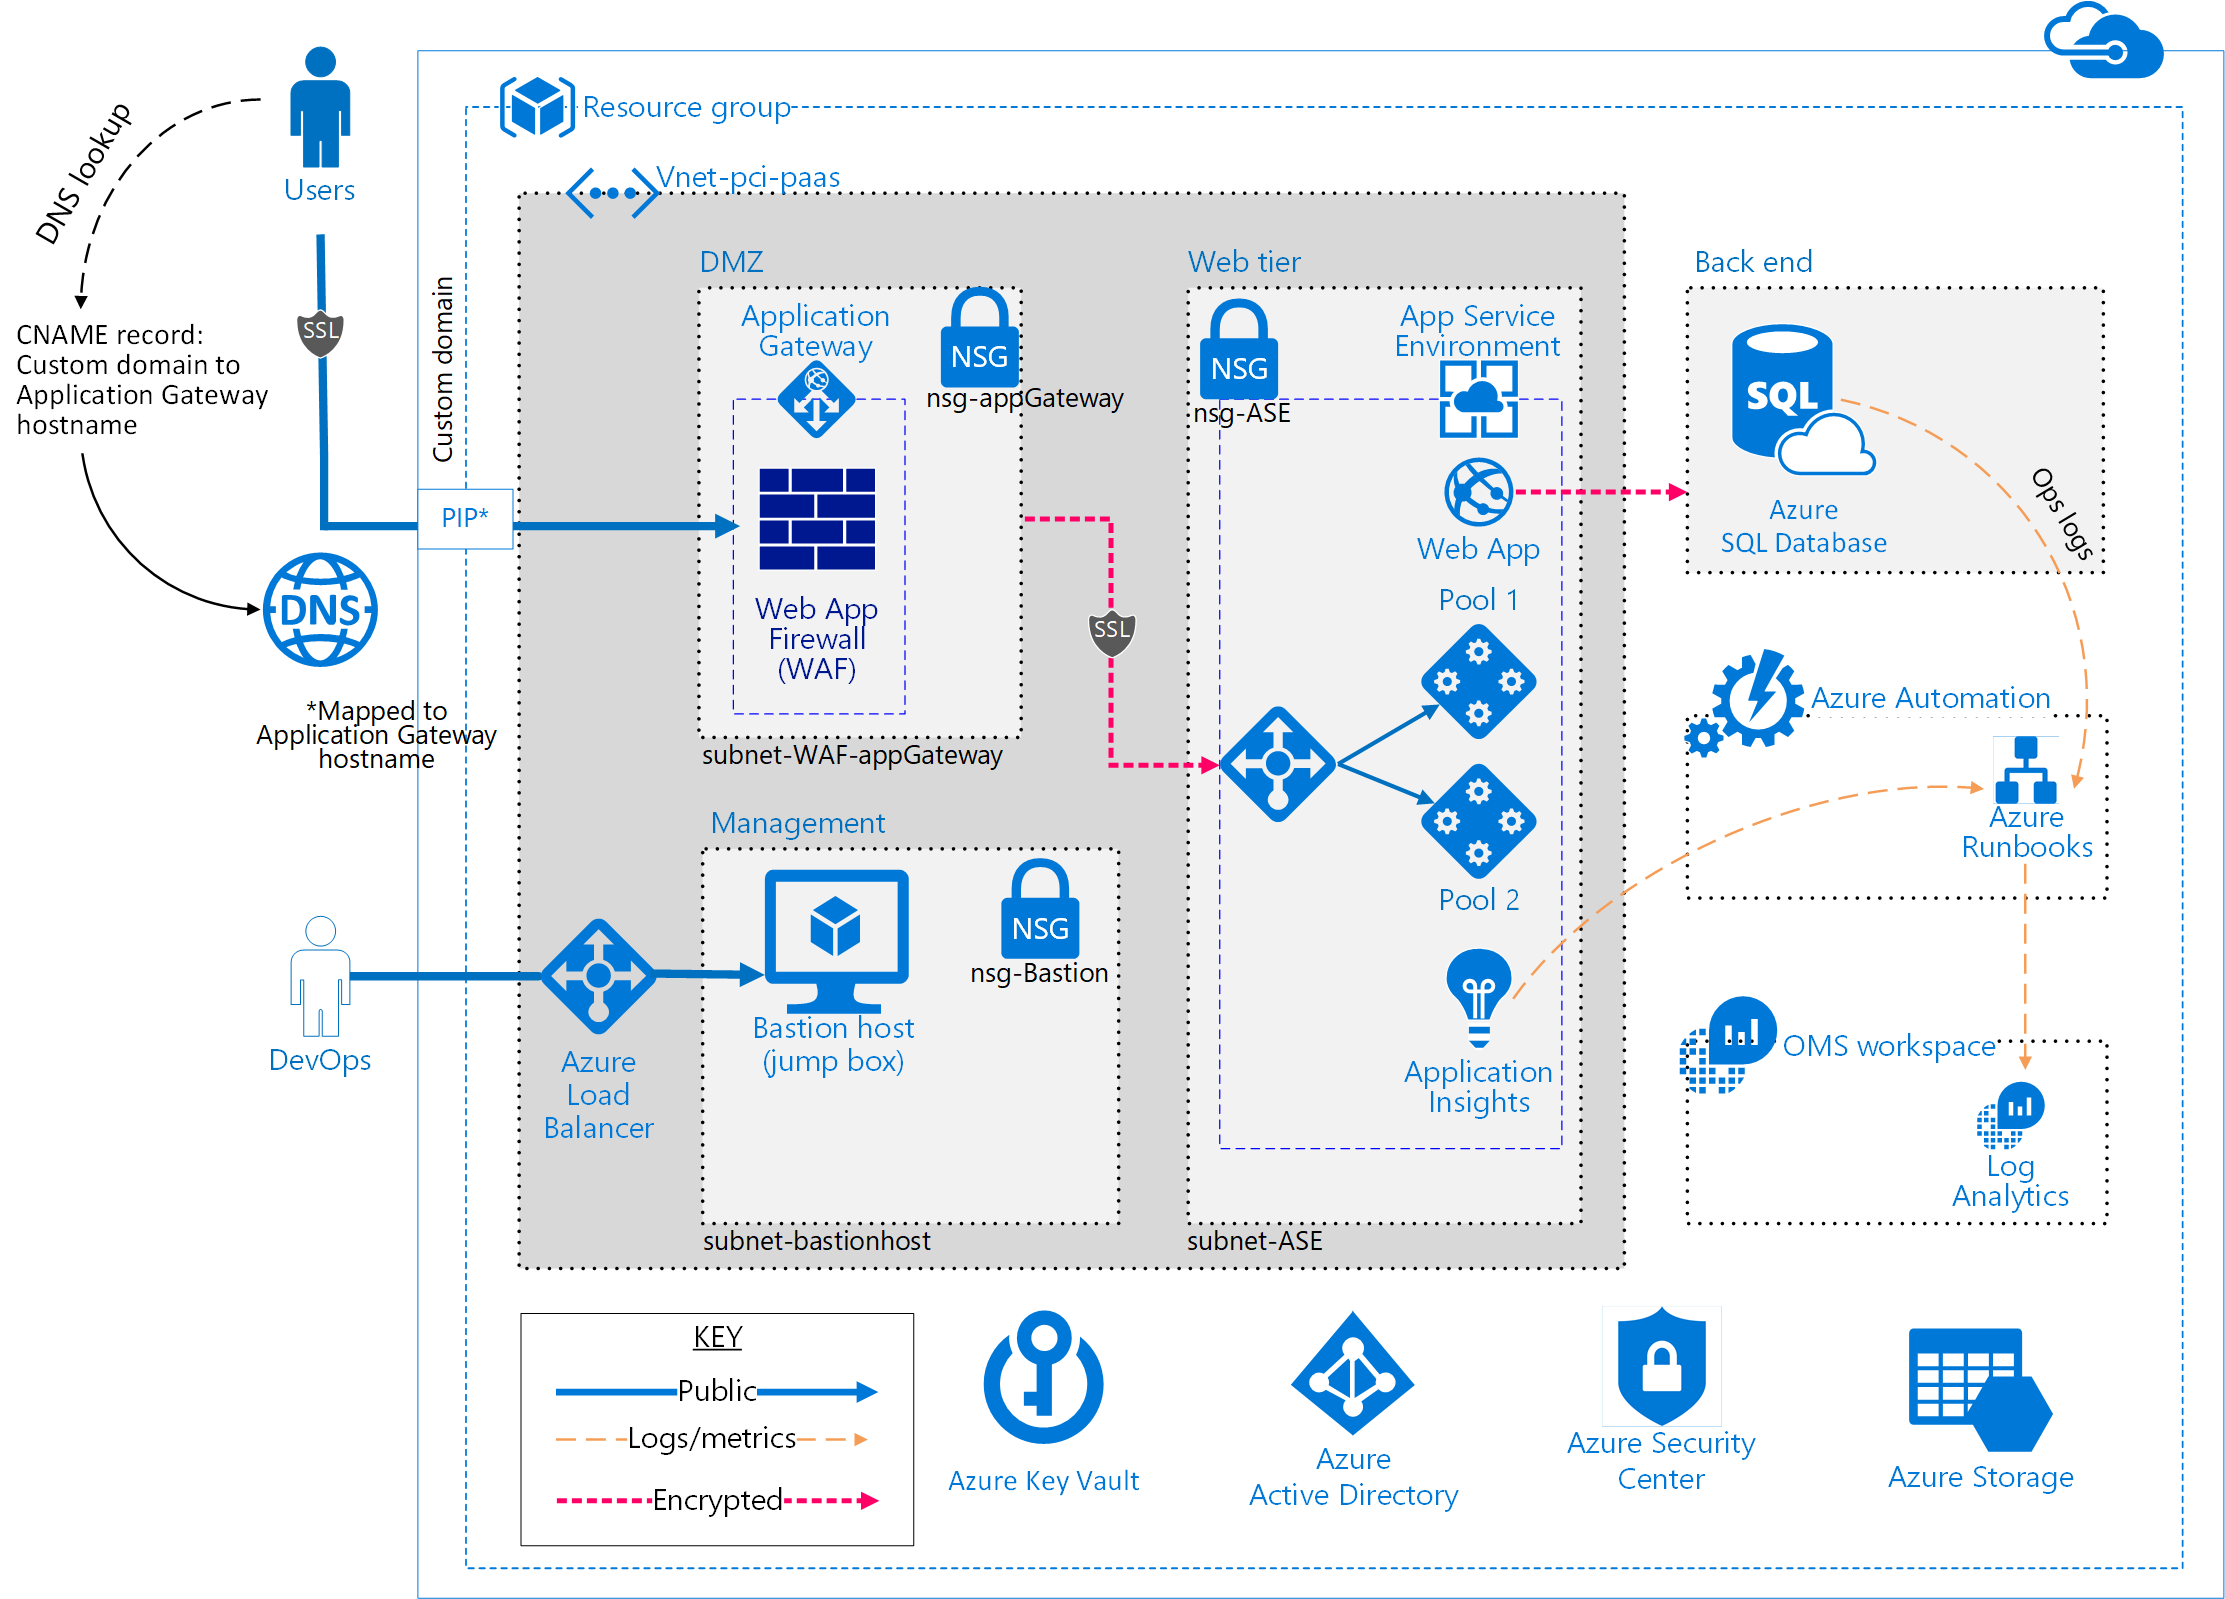 Azure security and compliance blueprint ffiec financial services architectural diagram malvernweather Choice Image